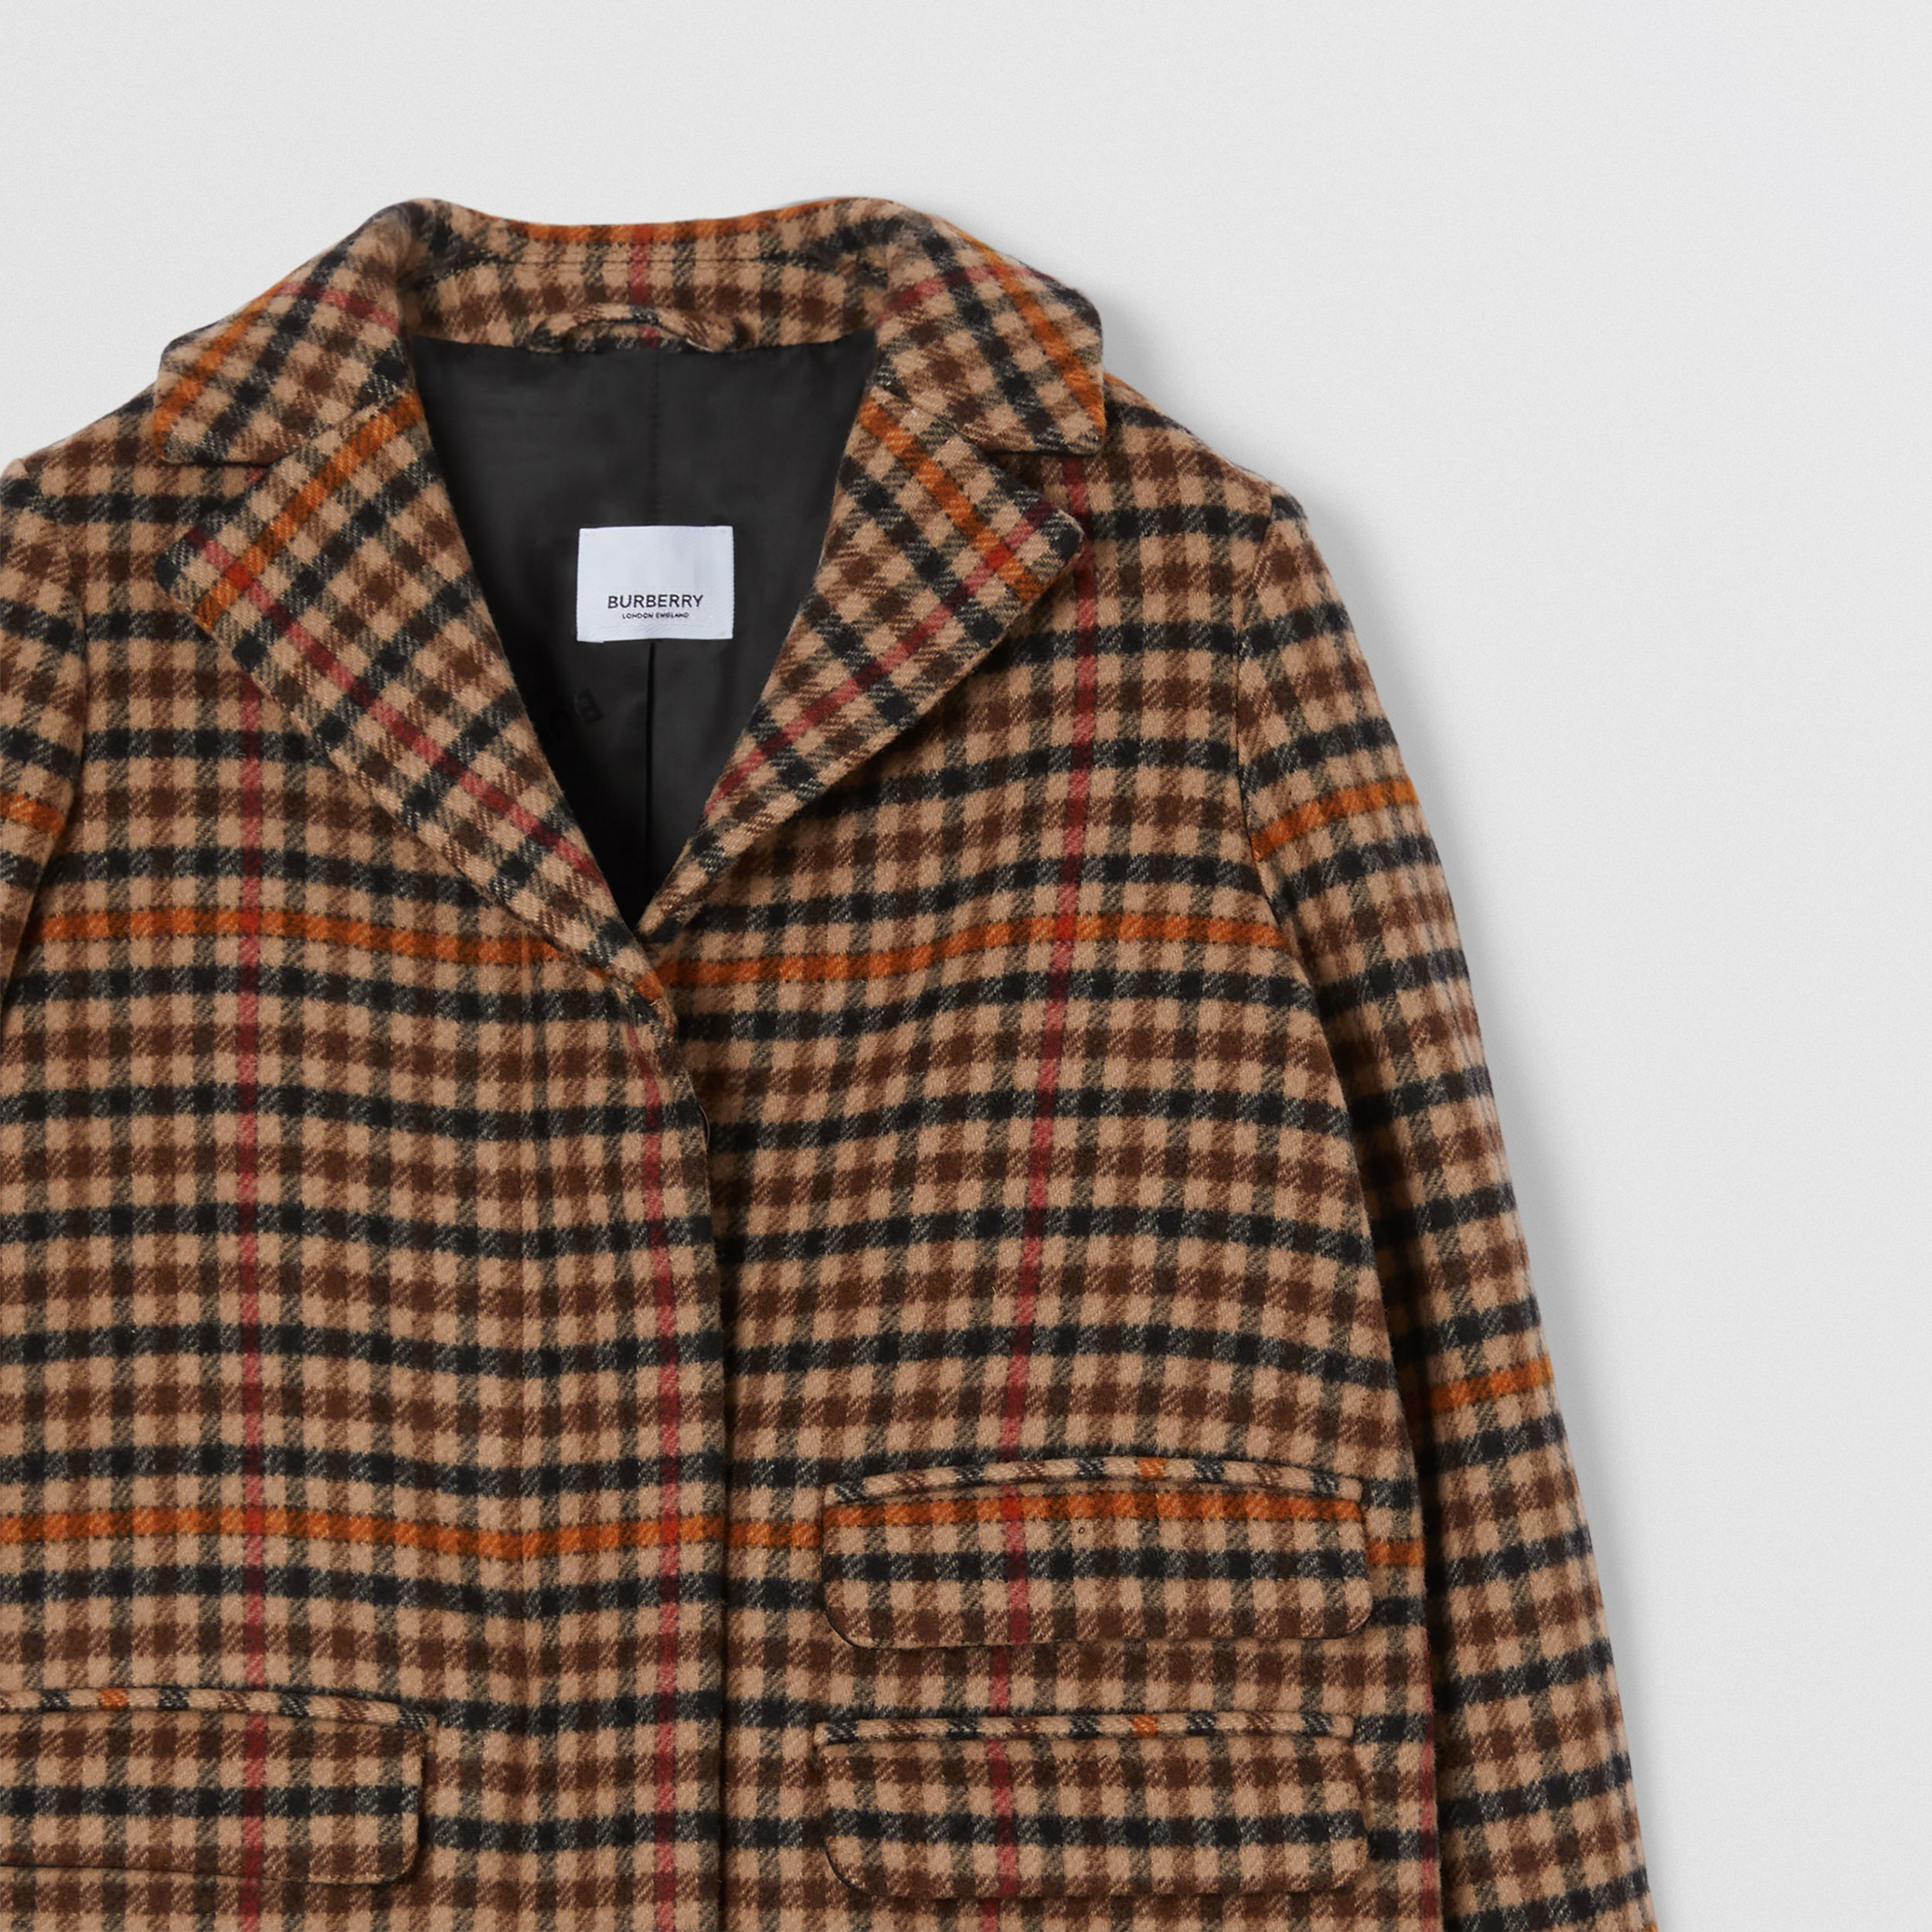 Embroidered Monogram Motif Check Wool Tailored Coat in Camel | Burberry - 4